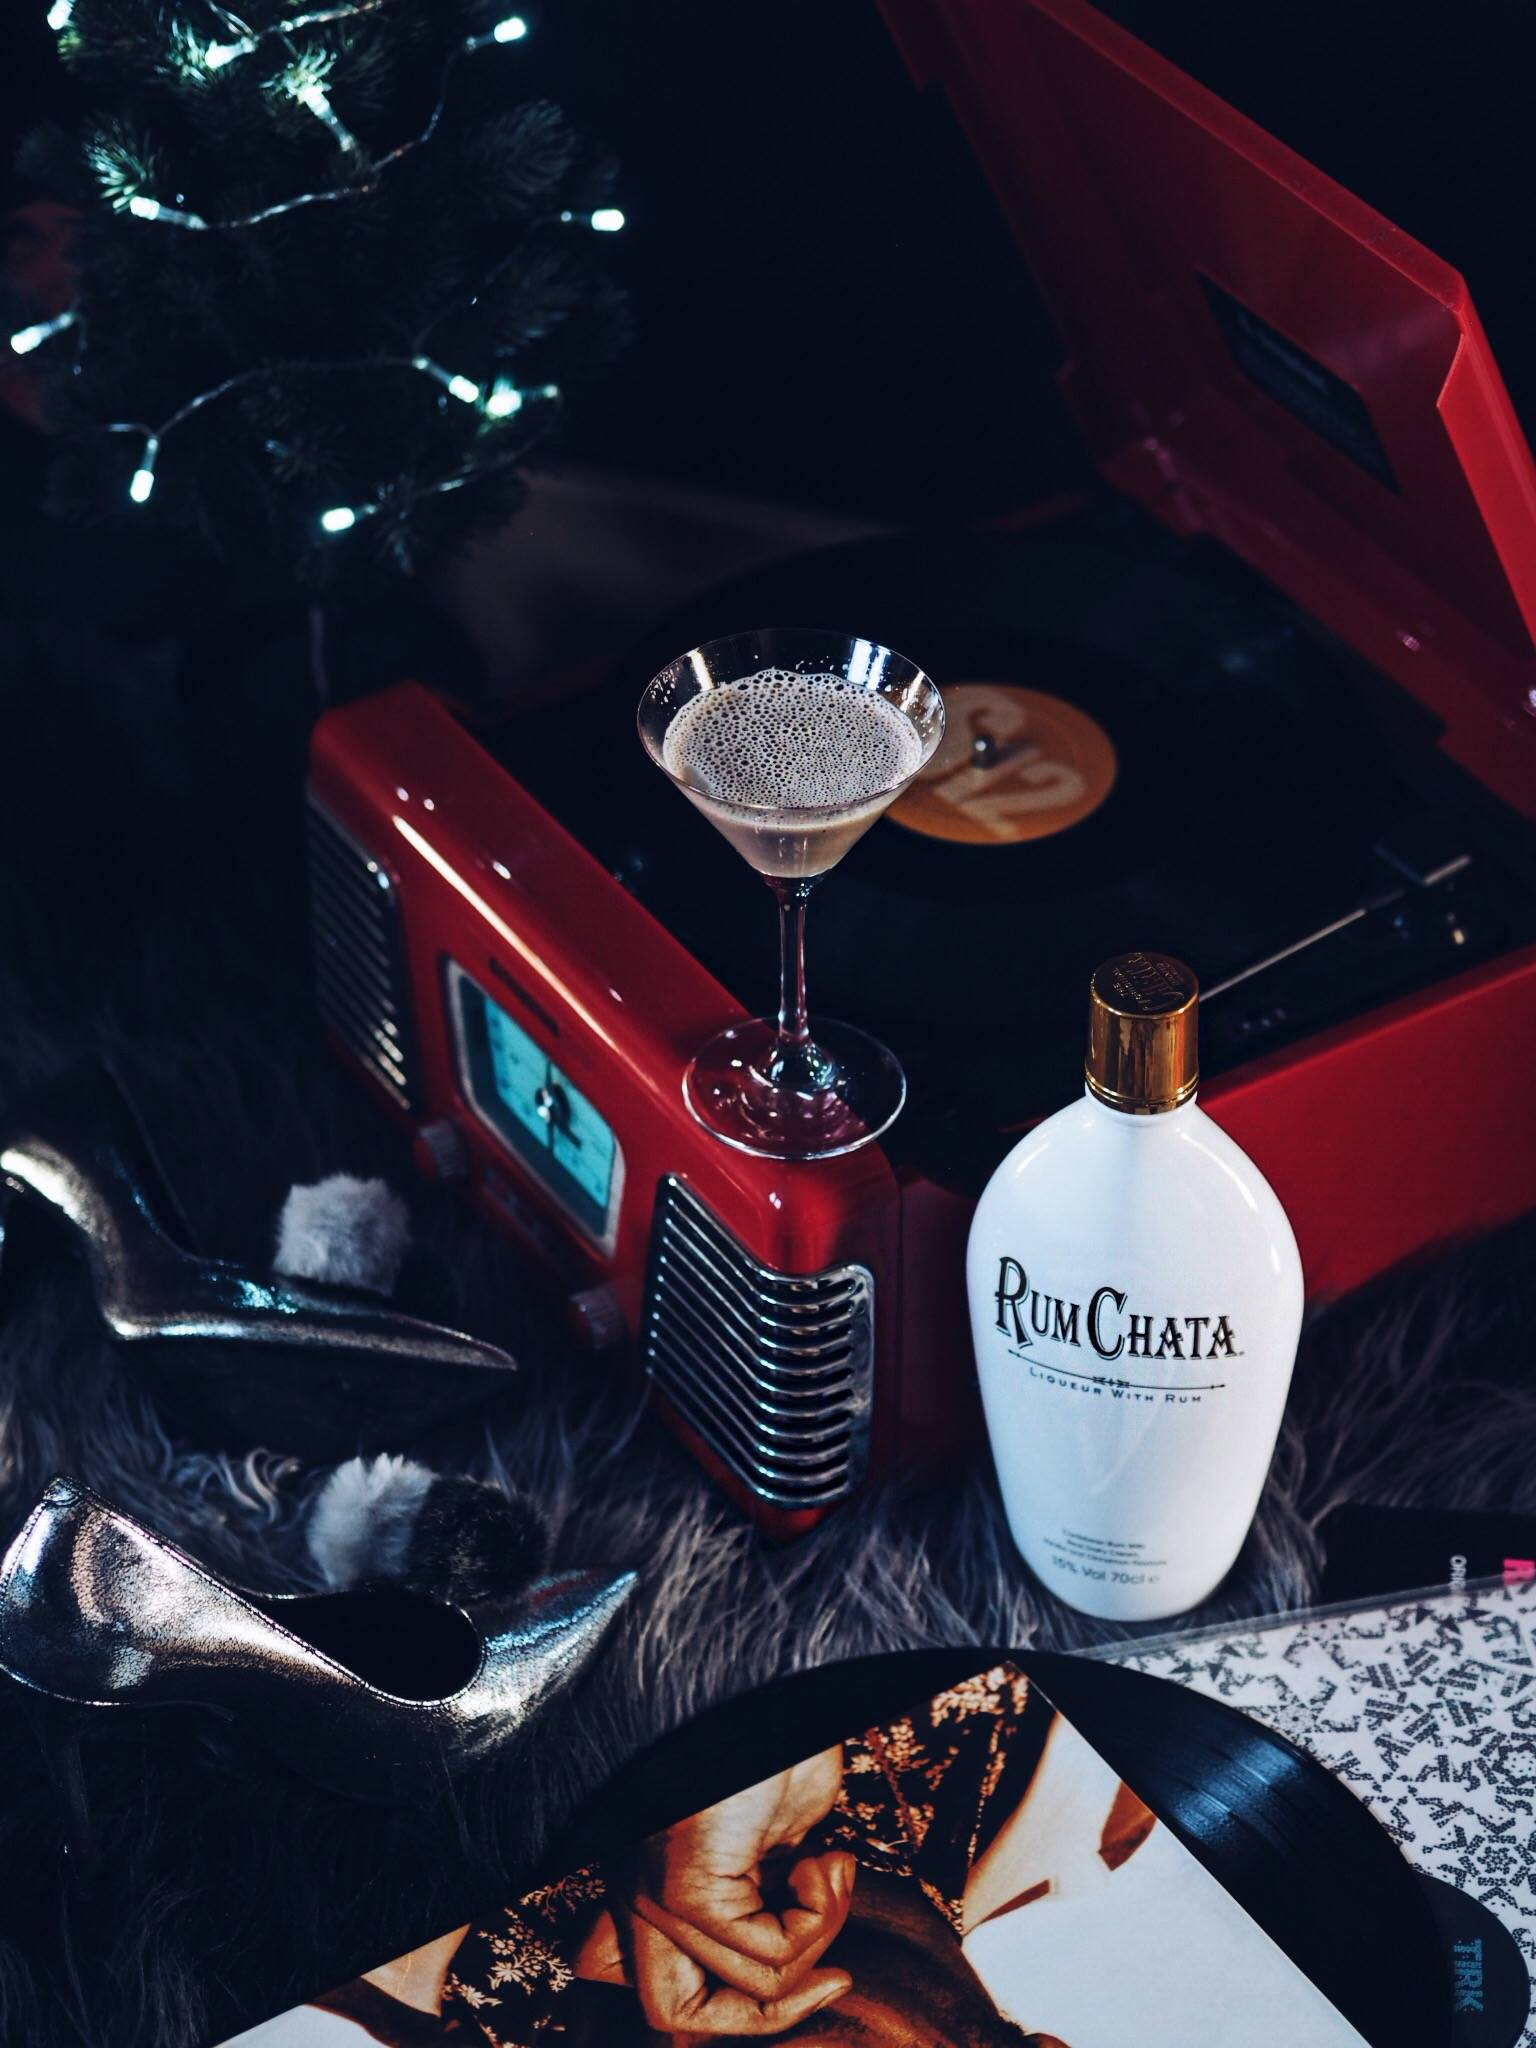 Get ready with me and RumChata for a girly Christmas Night out. Create your own pre-party with favourite music, snacks before a night out